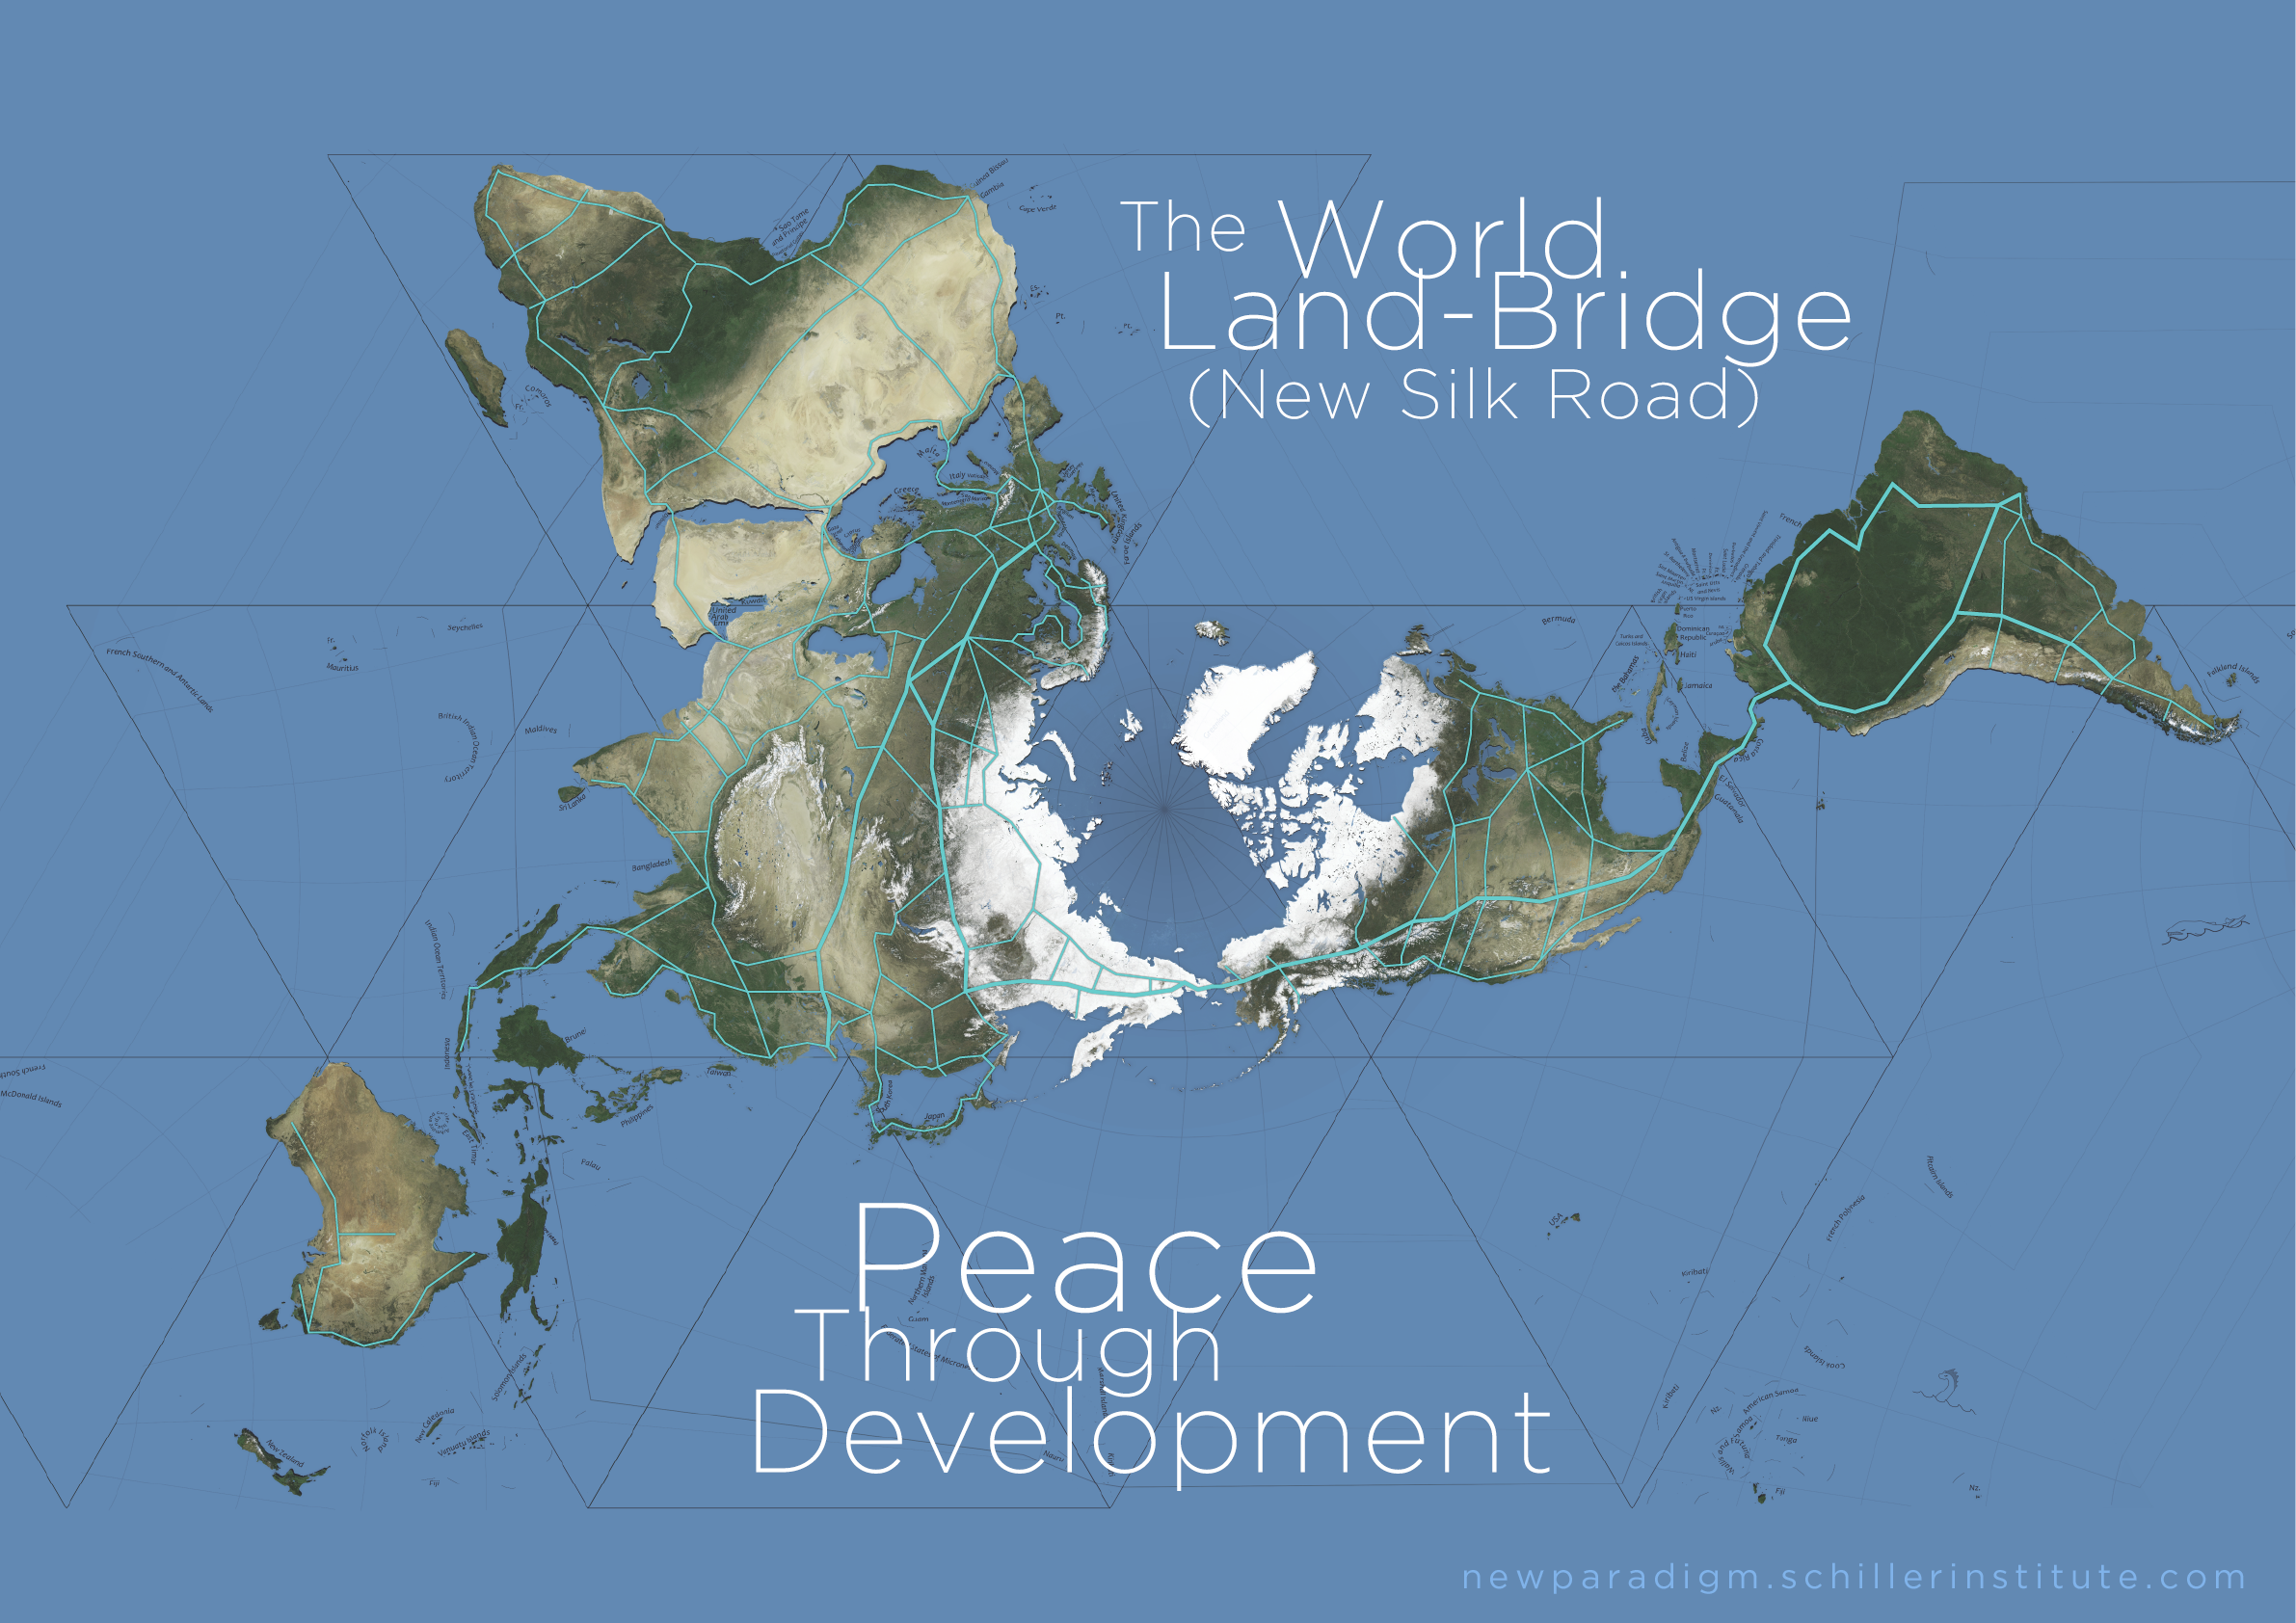 The World Land-Bridge